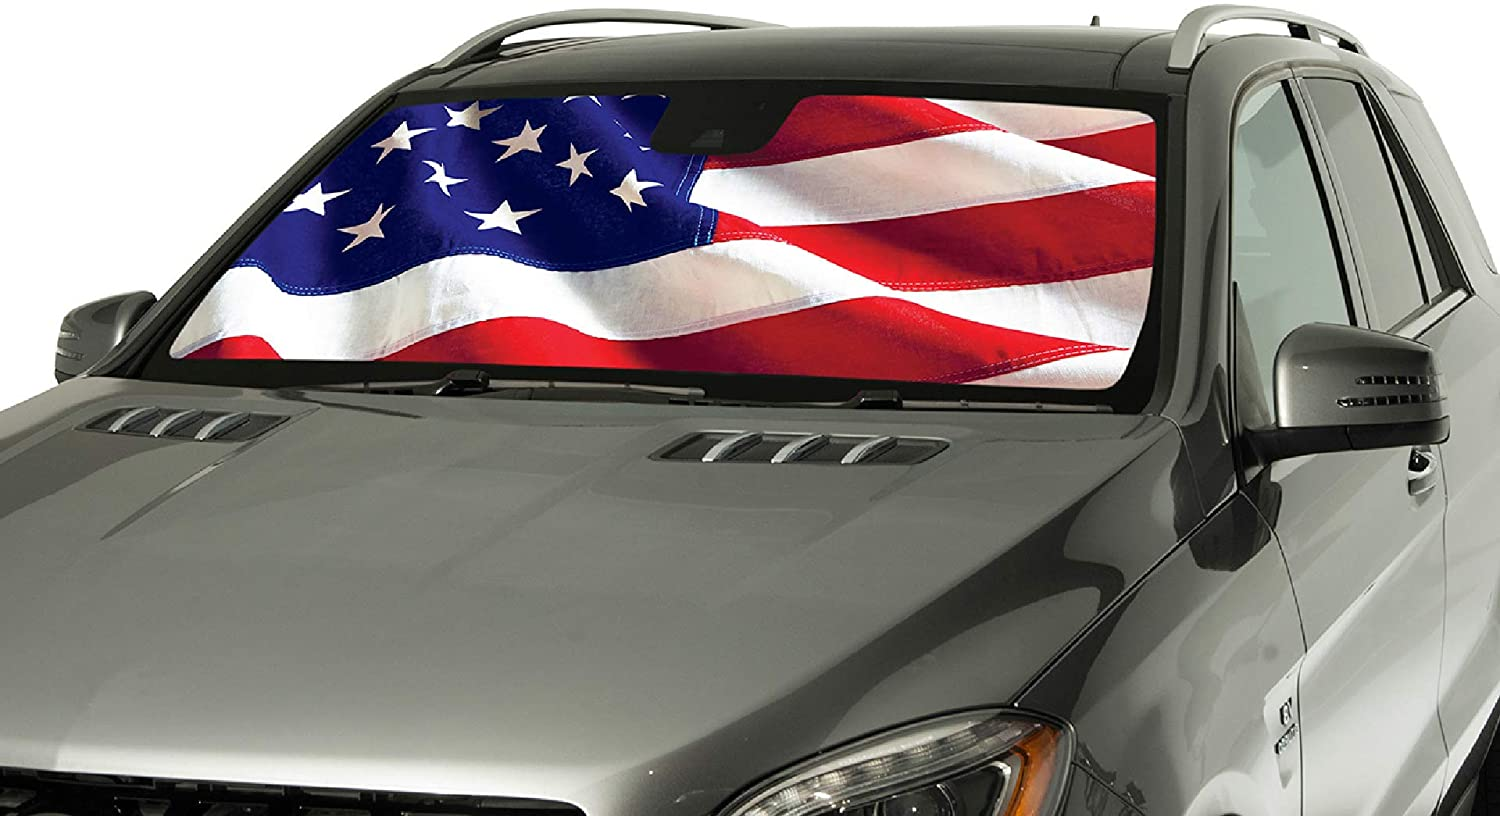 Intro-Tech TT-41A-US Silver Custom Fit American Flag Windshield Sunshade for Select Toyota RAV4 Models, w/Sensor